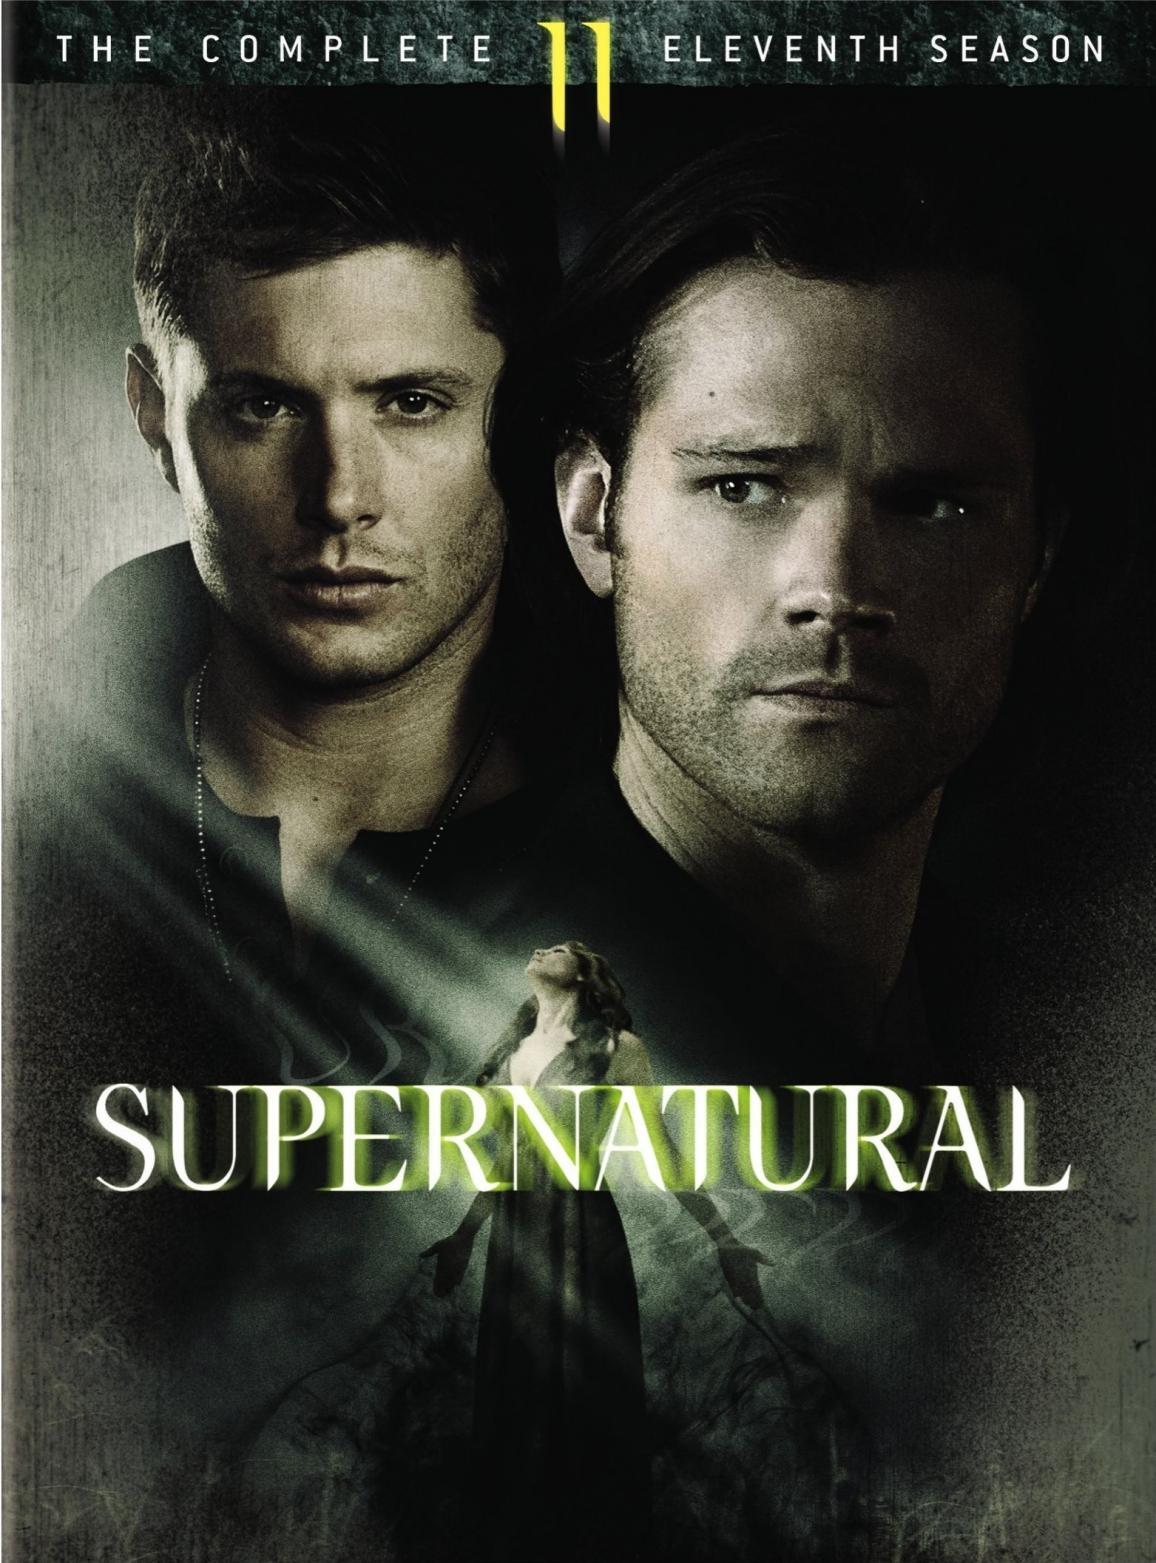 Supernatural The complete eleventh season by Aronauer, Todd